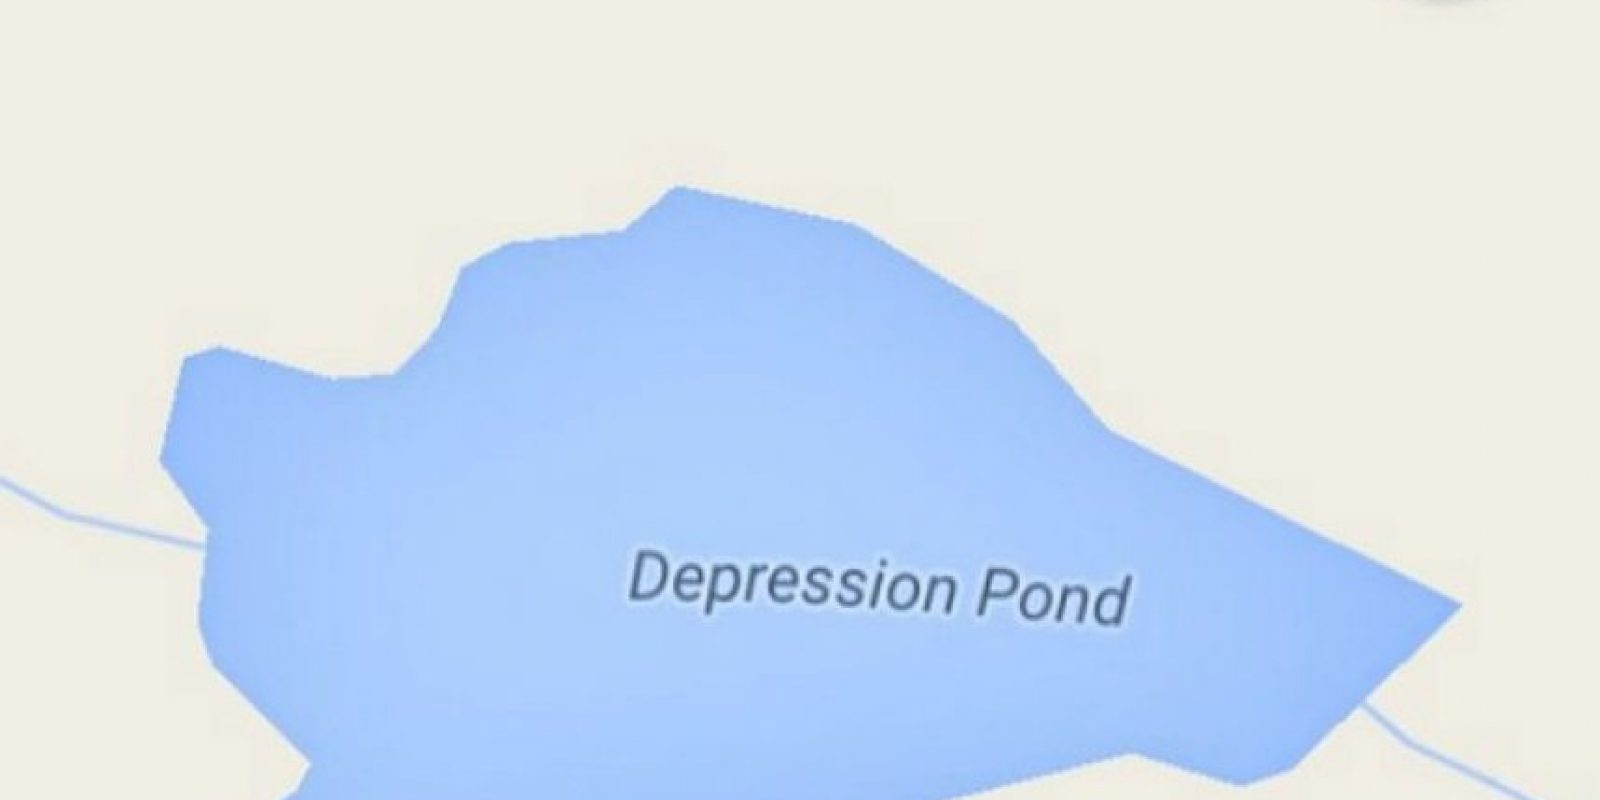 Depression Pond (Dover, New York state, Estados Unidos) Foto: Vía Instagram @sadtopographies